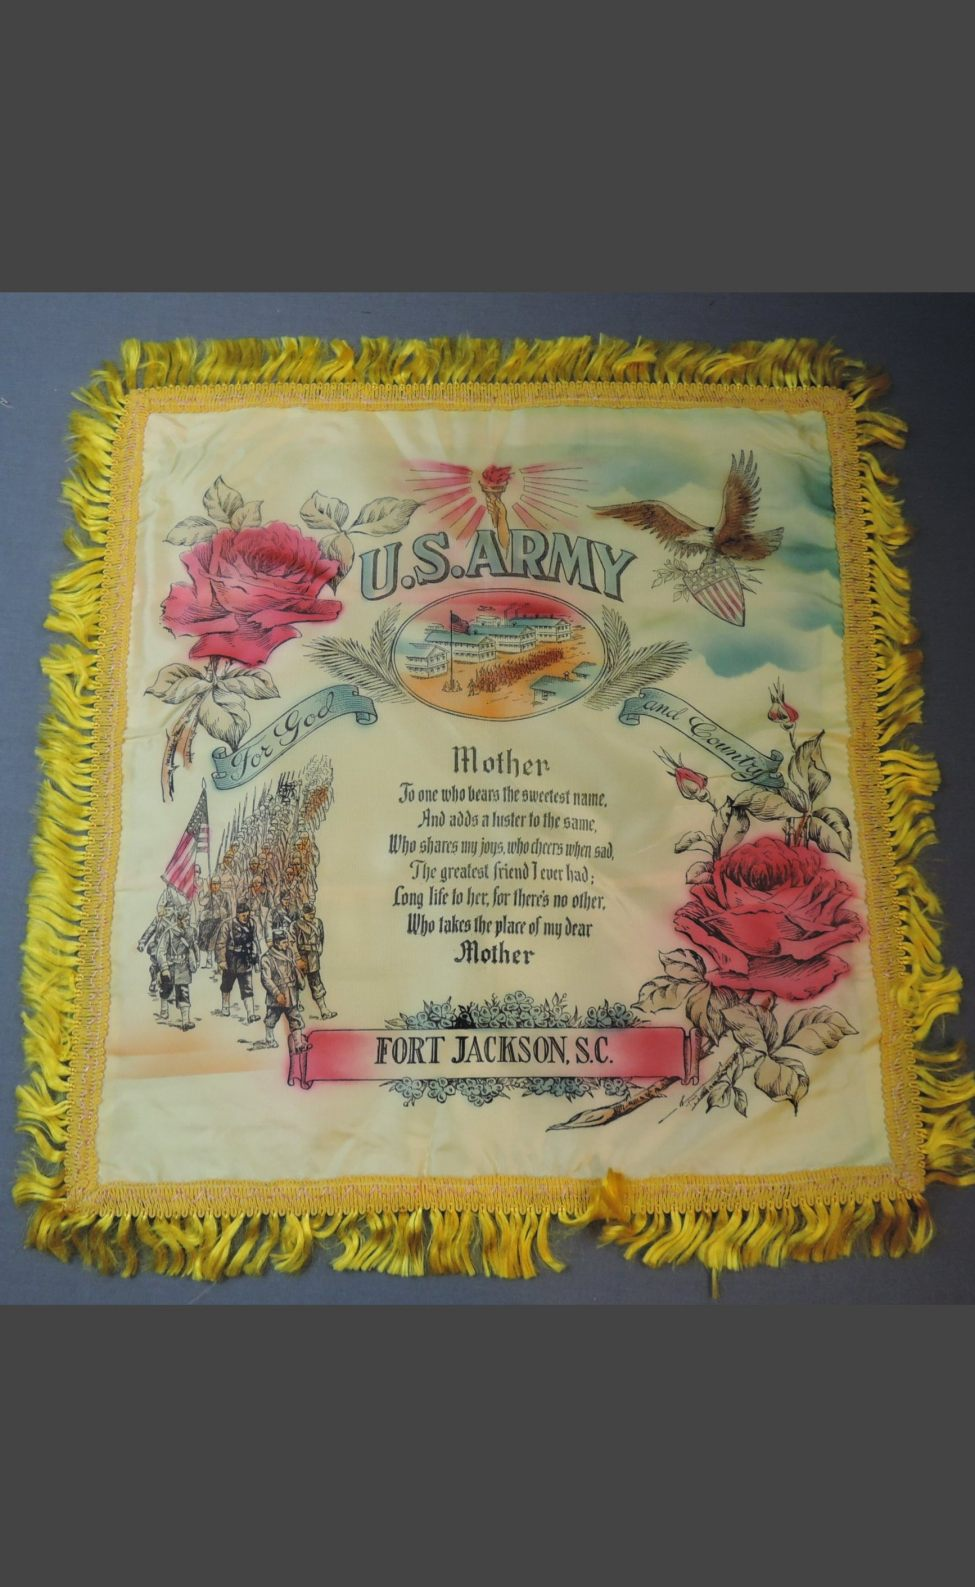 Vintage US Army Fort Jackson 1940s Satin Pillow Cover with Fringe, Souvenir Mother Poem, unused